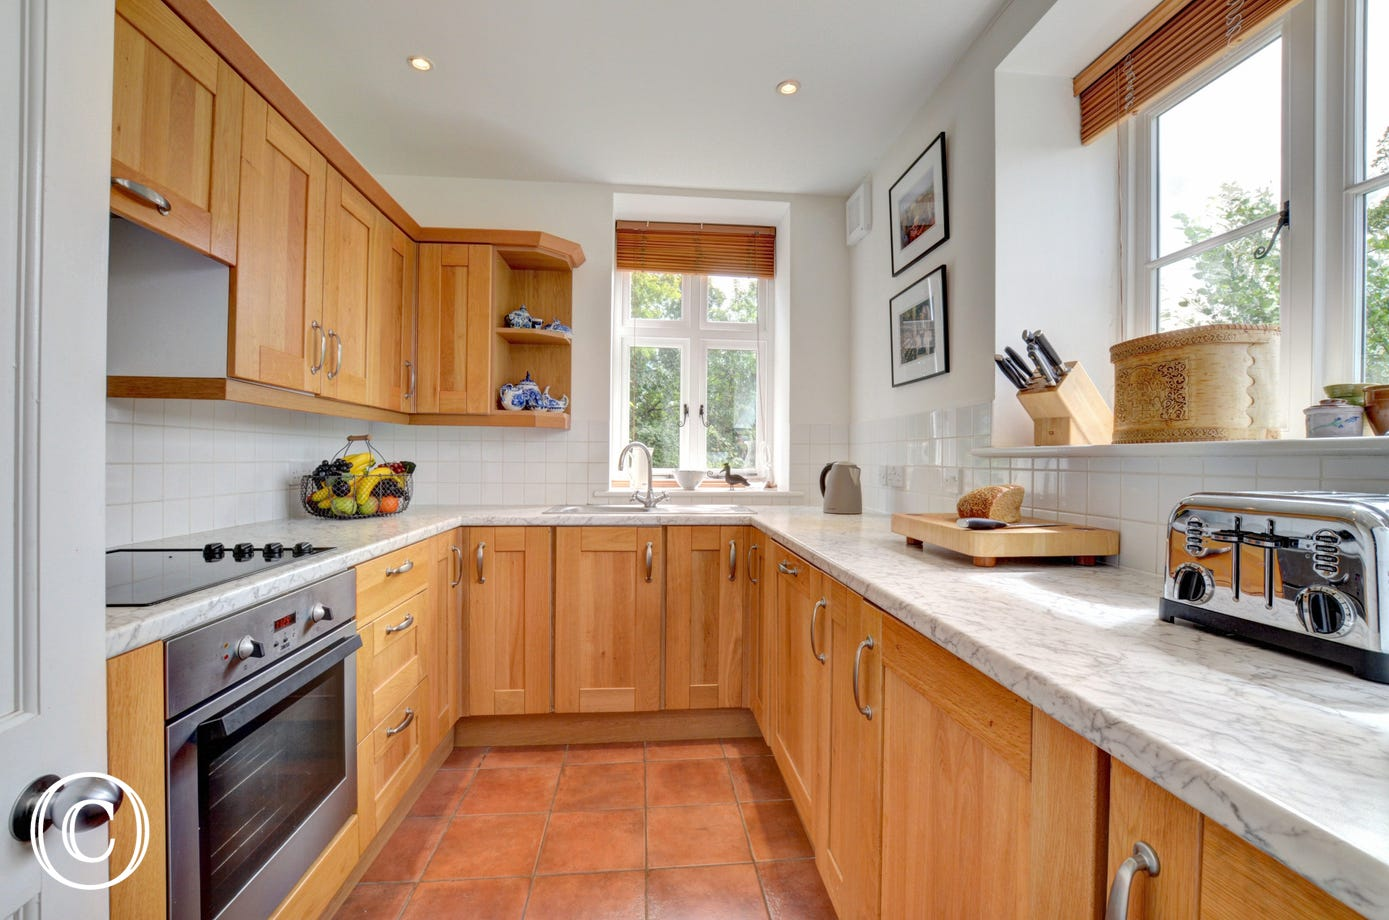 Kitchen equipped with built in electric oven, ceramic hob, microwave, fridge, freezer, dishwasher